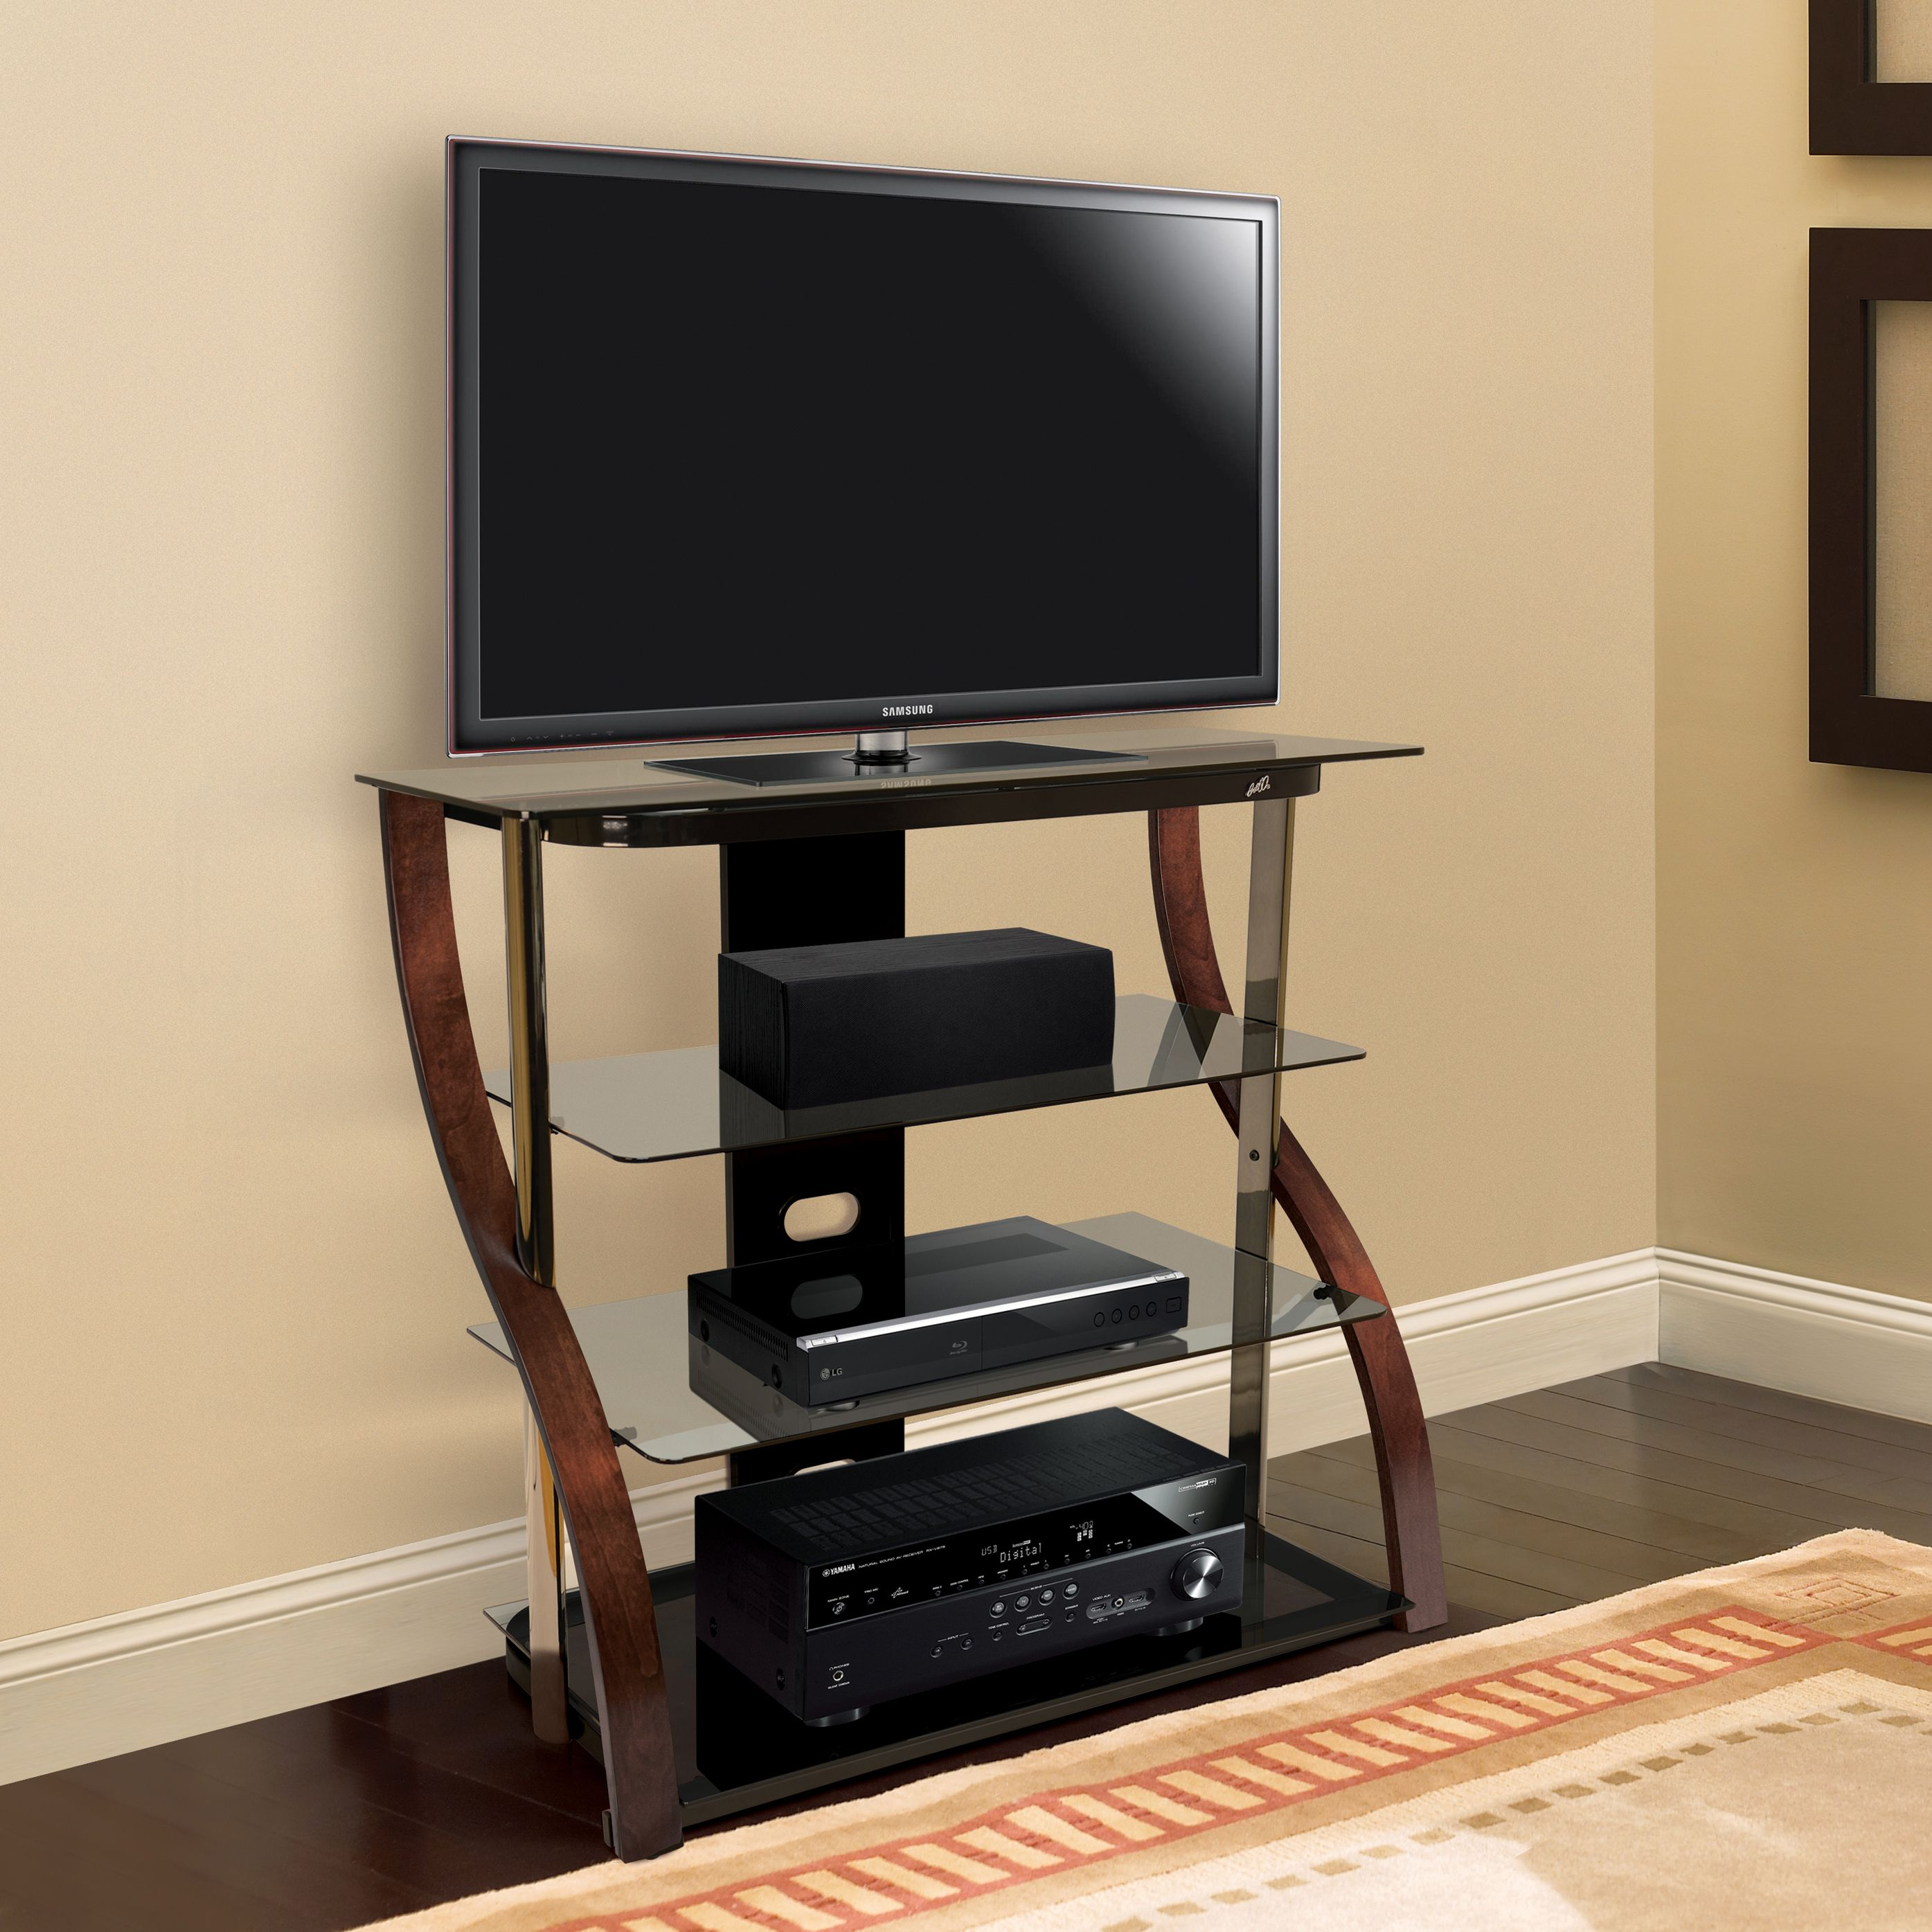 40 Inch Tall TV Stand